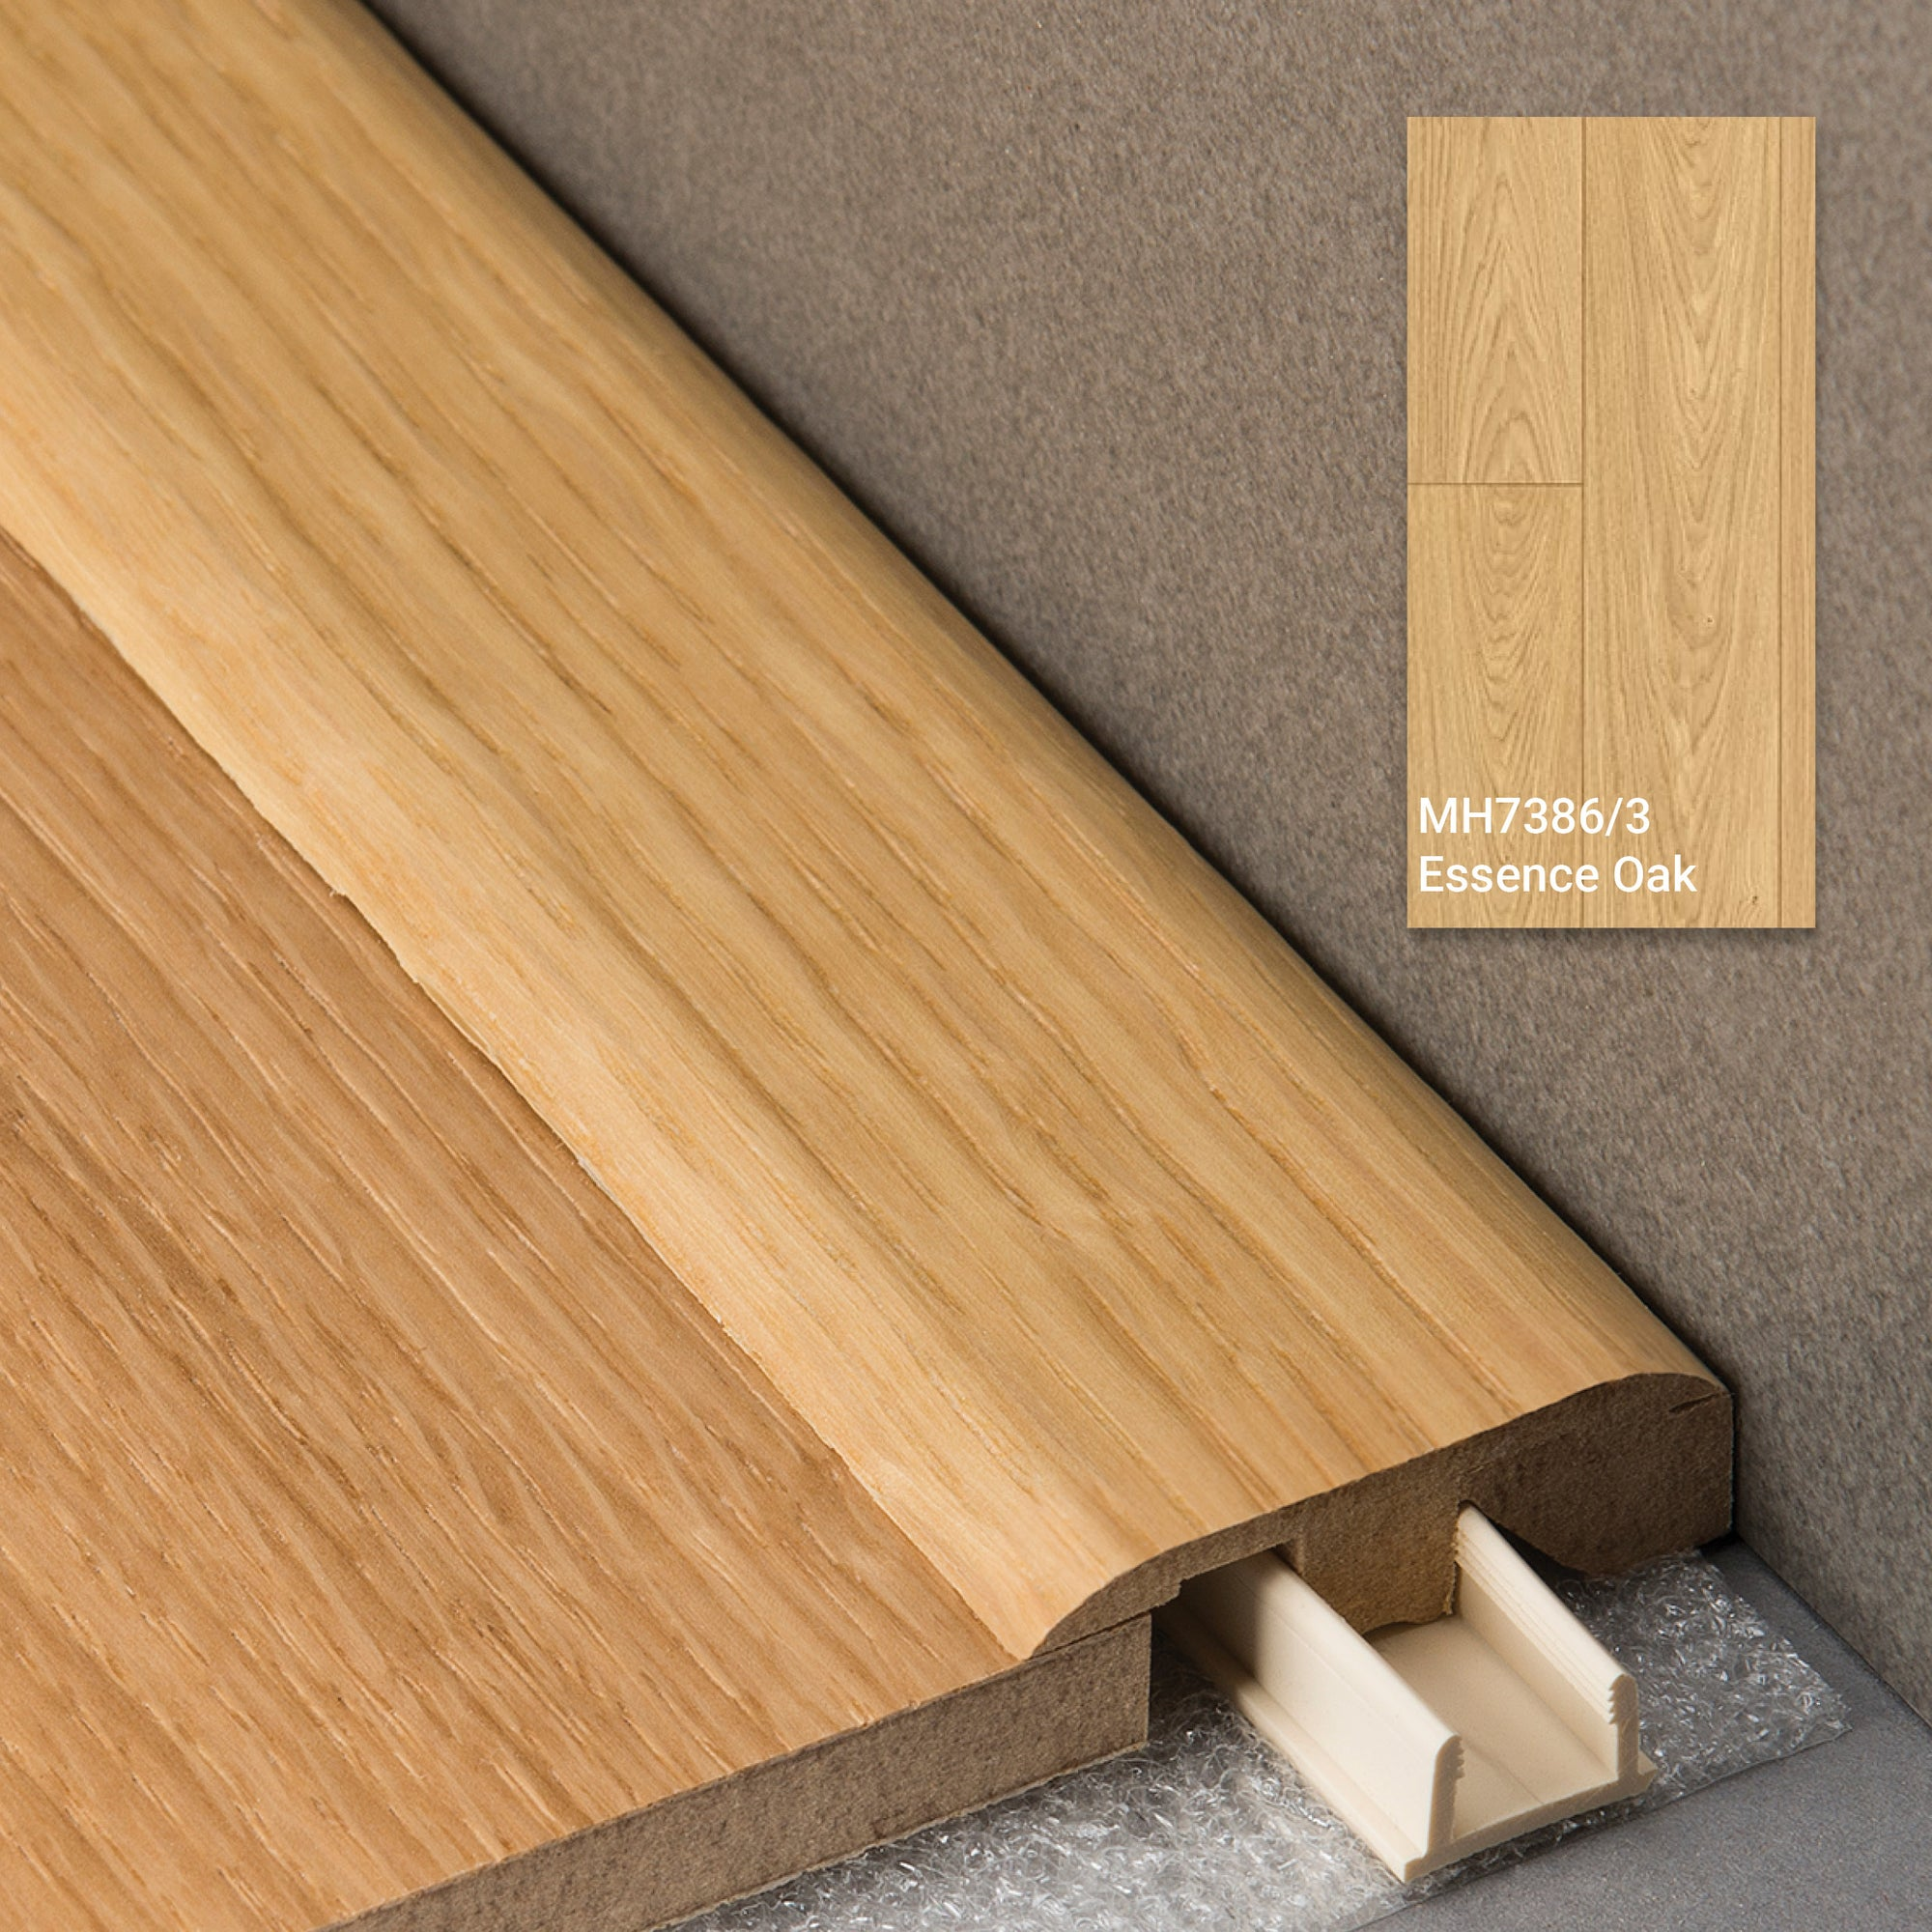 3 in 1 Profile Essence Oak 2150mm Length